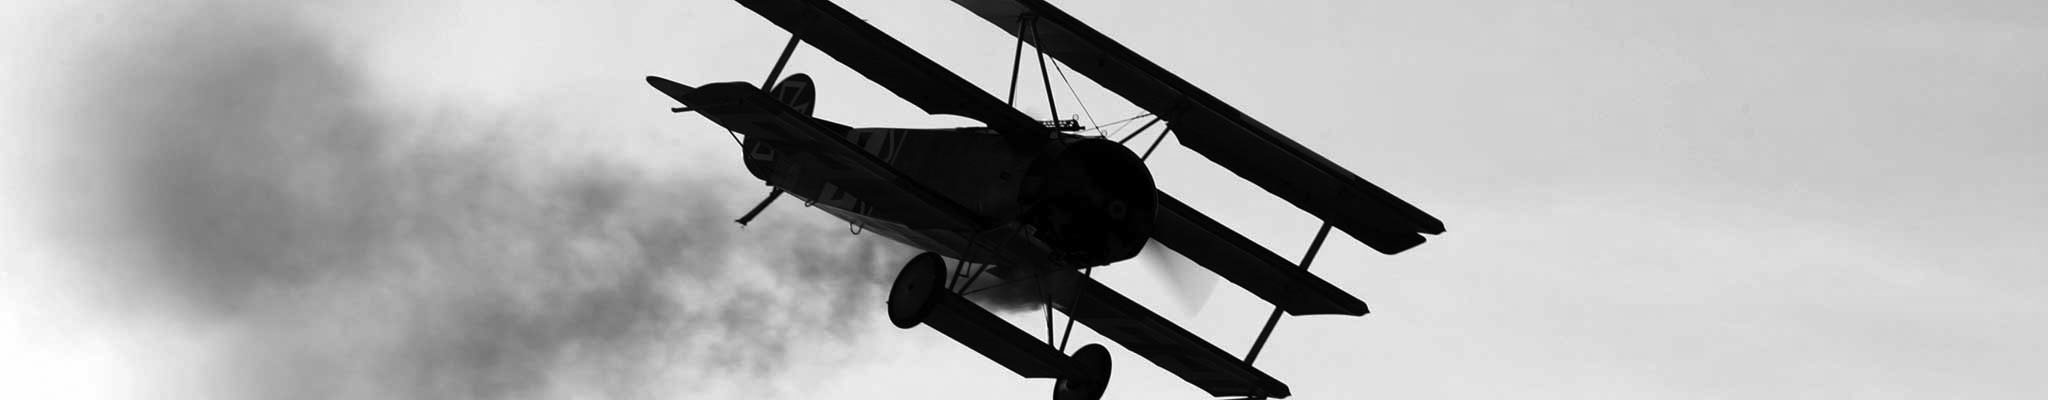 Sywell Great War Airshow 2014